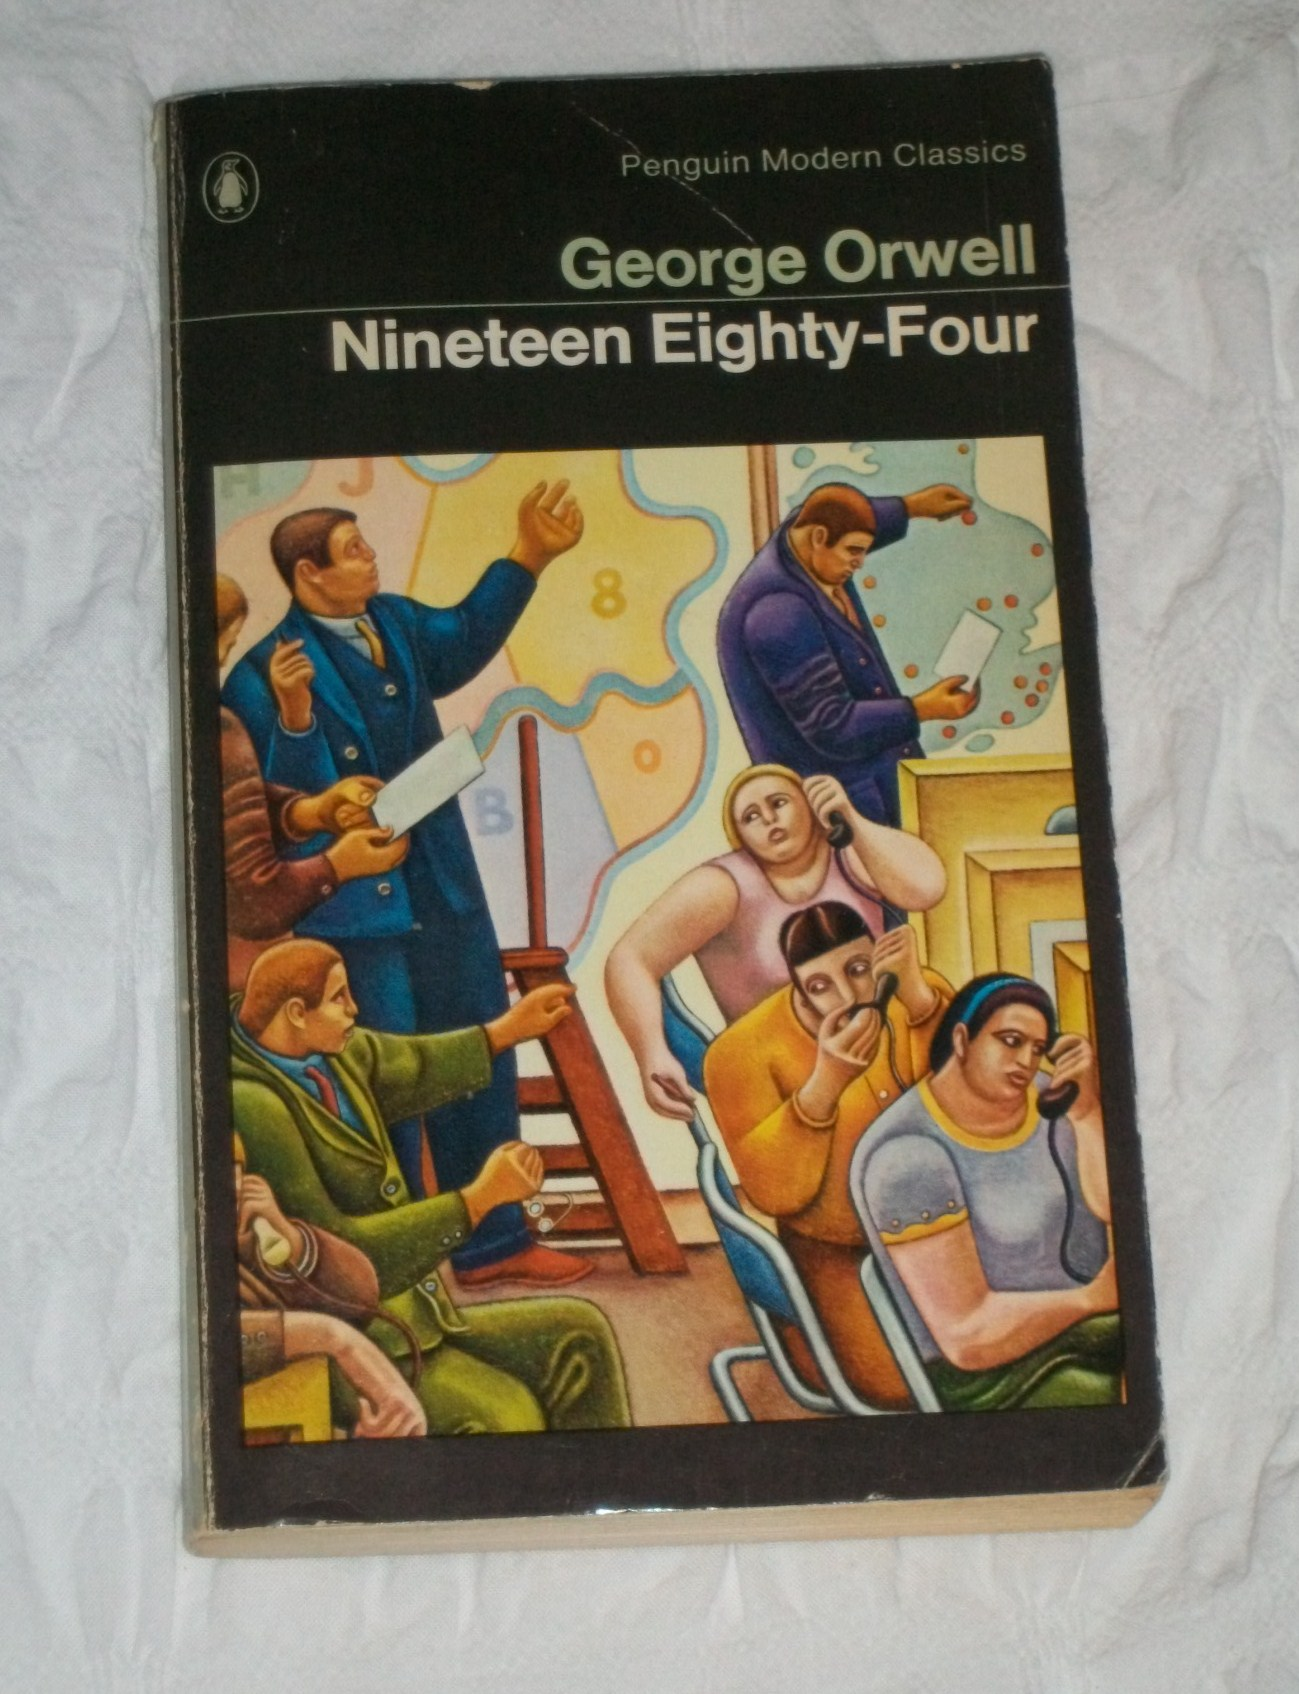 George Orwell Nineteen Eighty-Four doomed literary loves